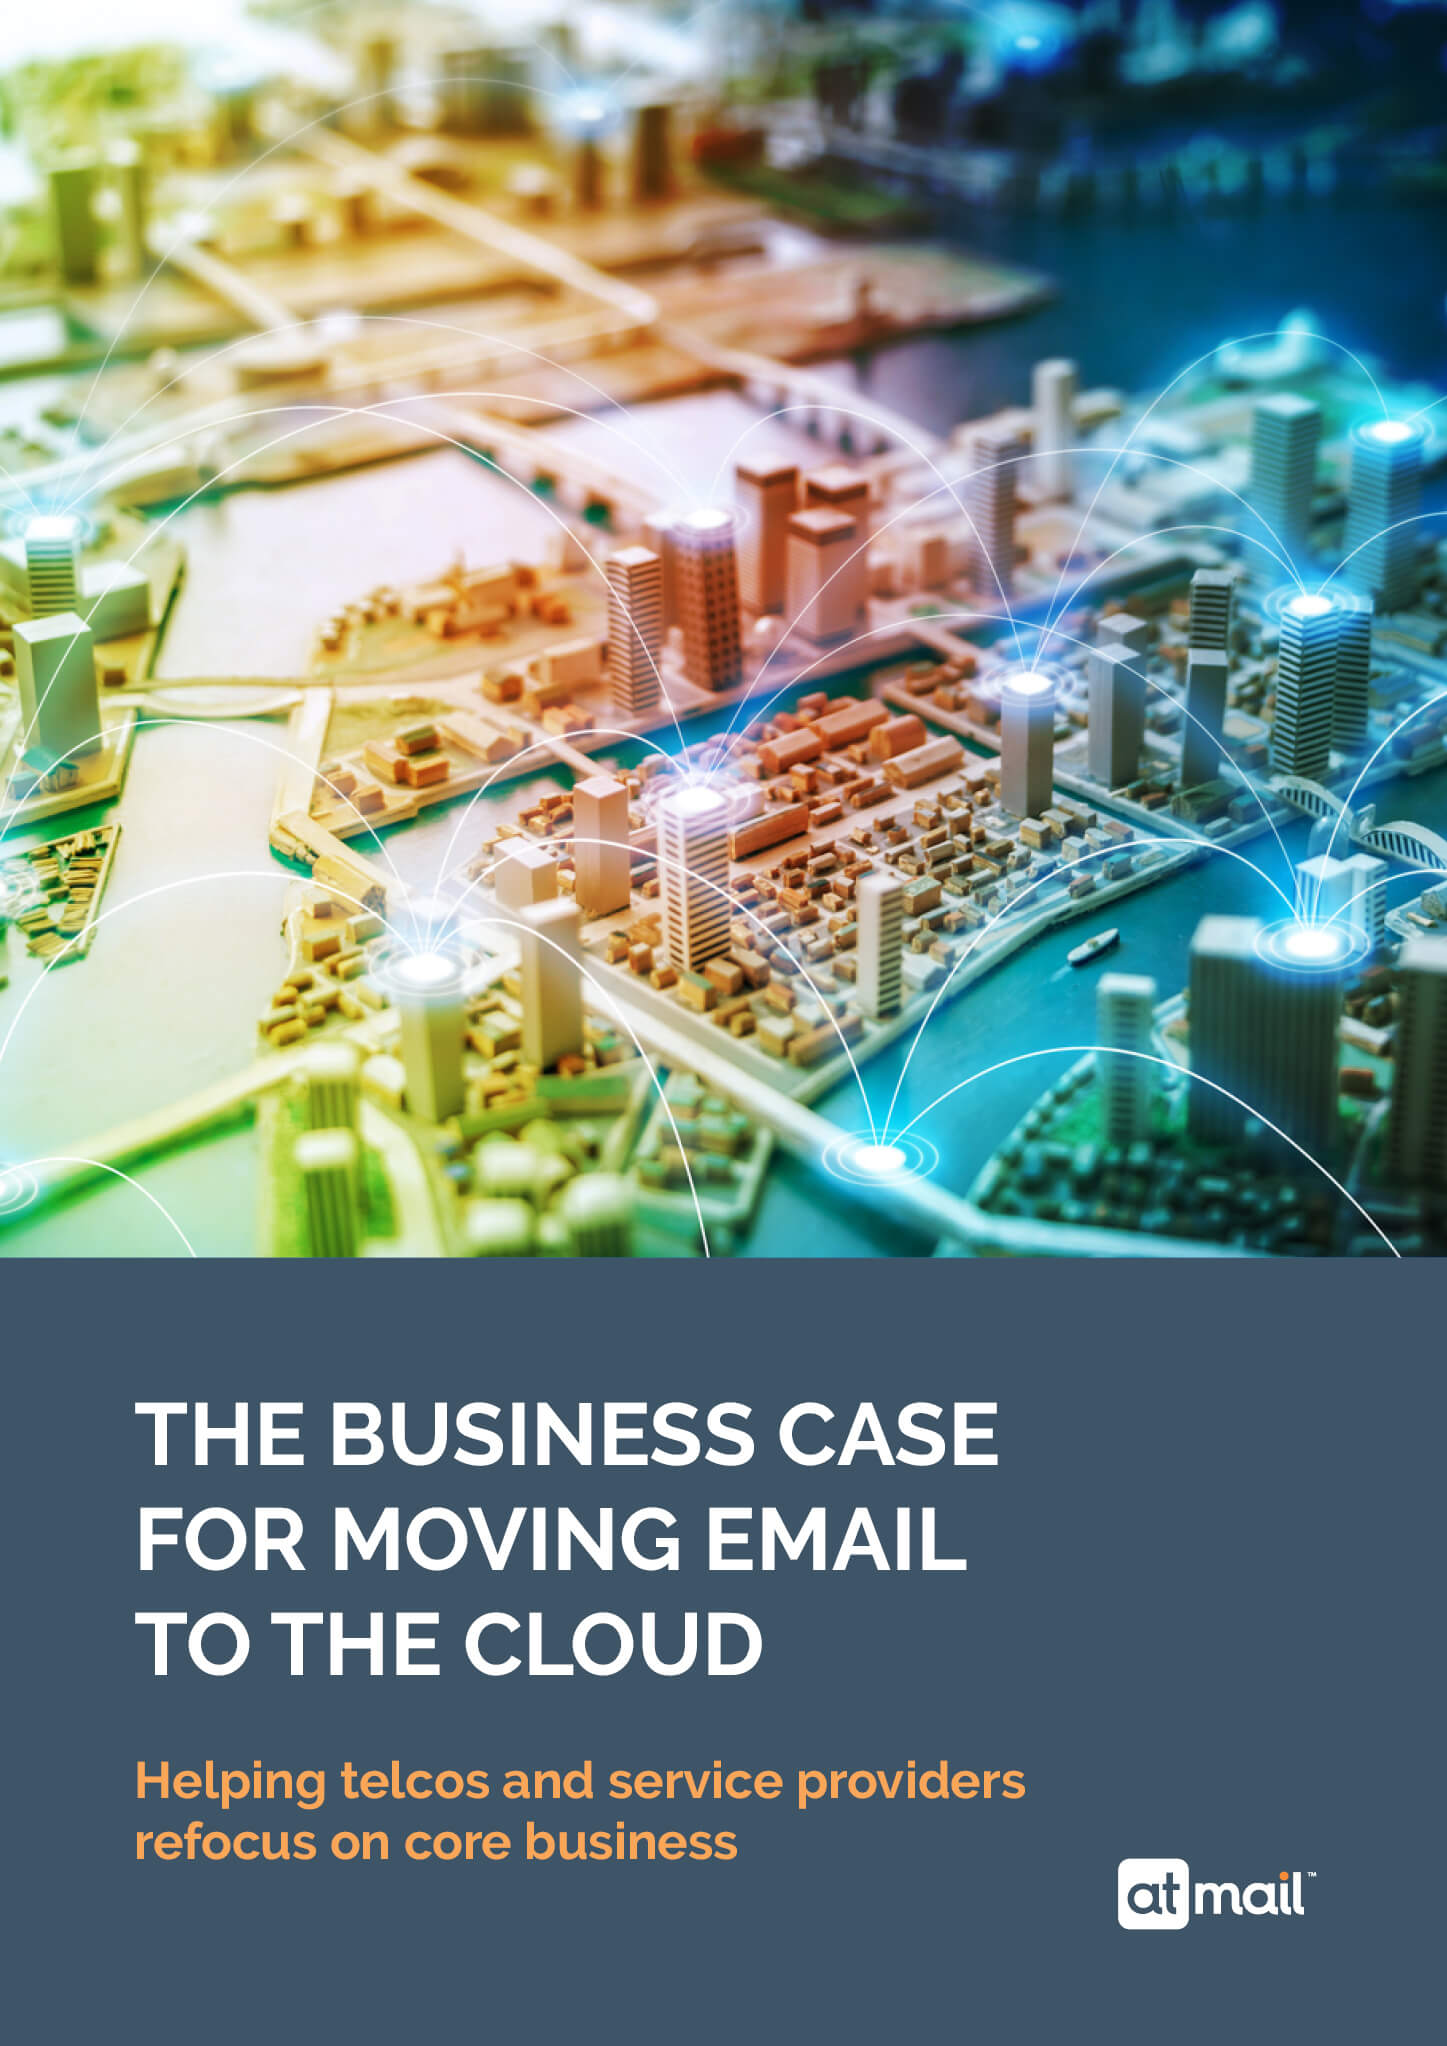 8 Reasons to Move Your Customer Email Platform to the Cloud - atmail